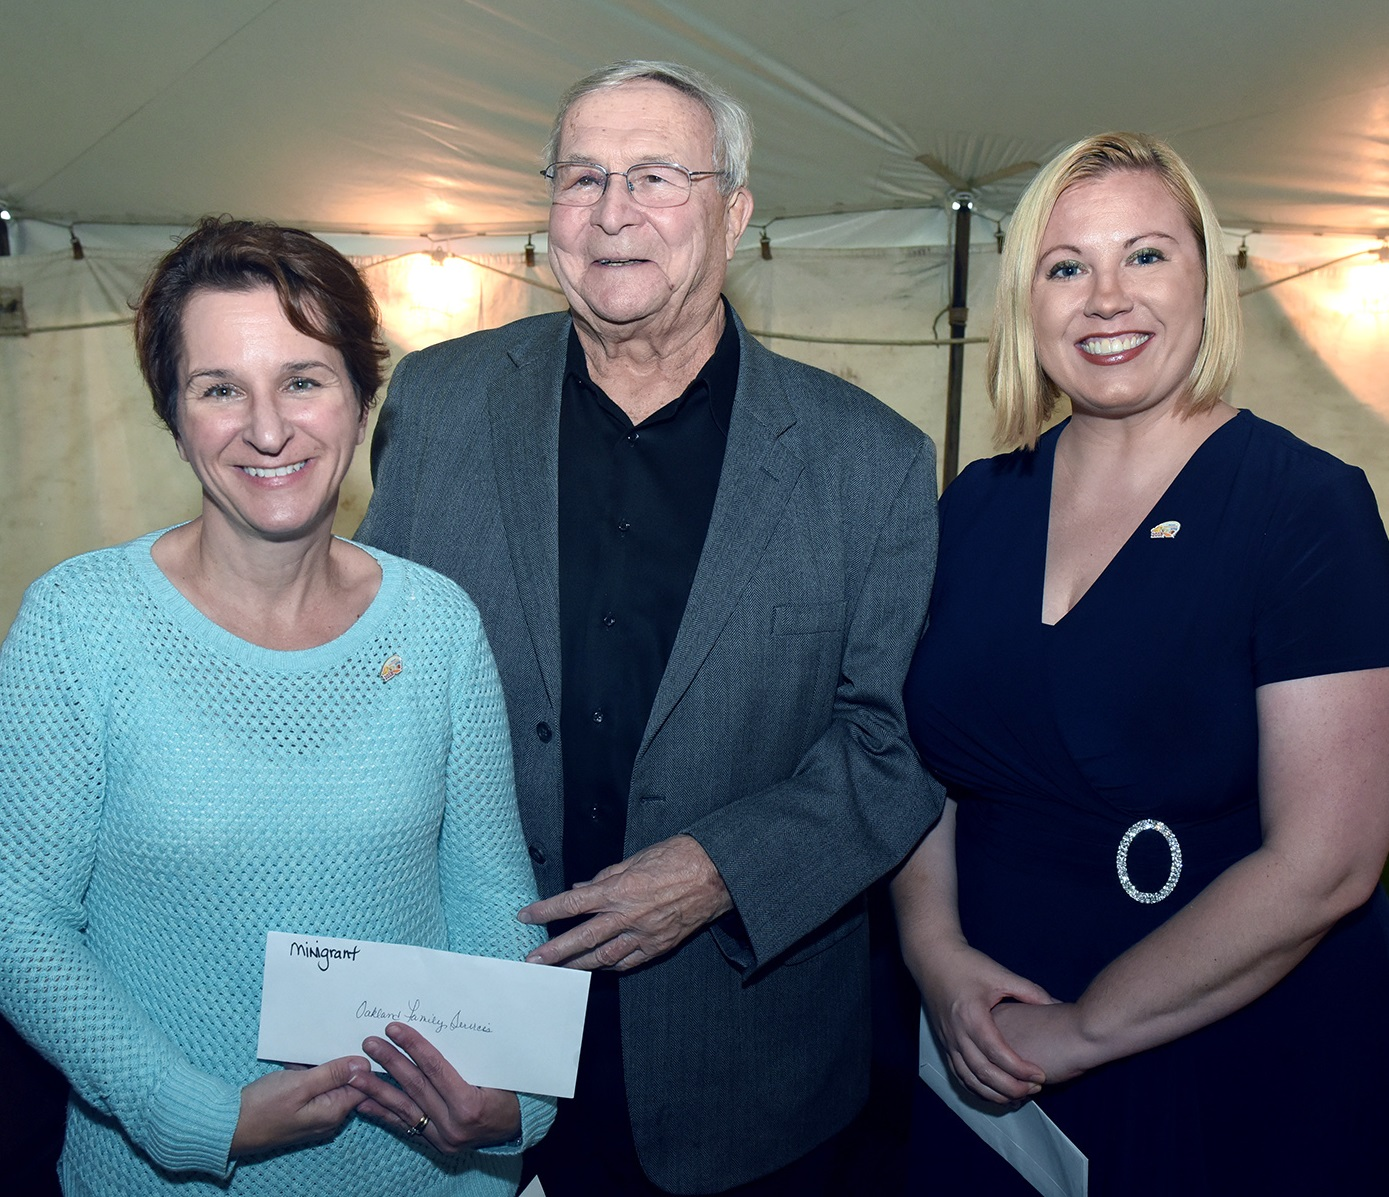 Kris Kasperski, director of Early Childhood Services, receives a Brooksie Way mini-grant from L. Brooks Patterson, chairman of the Brooksie Way Board of Directors, and Heidi McGlinnen, Director of Marketing and Foundation for McLaren Oakland. Photo taken by Vaughn Gurganian.